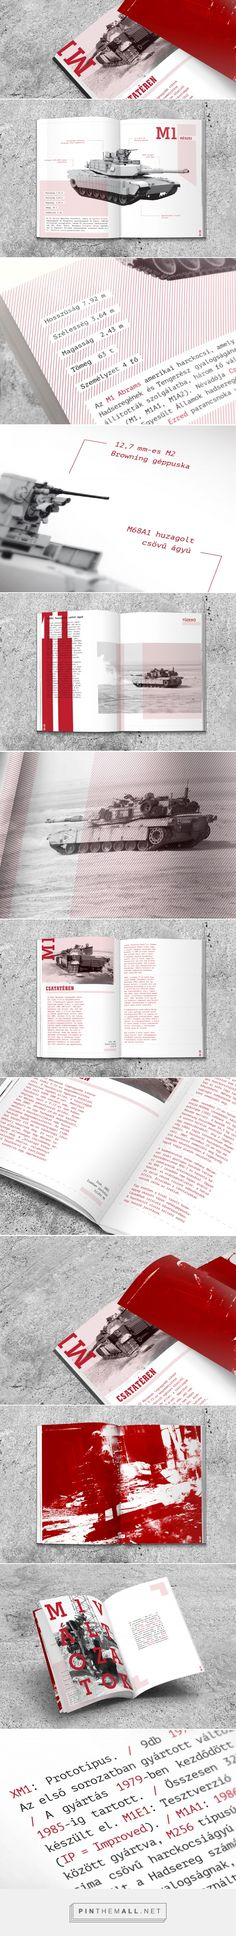 M1A1 Abrams Prospectus on Behance - created via https://pinthemall.net